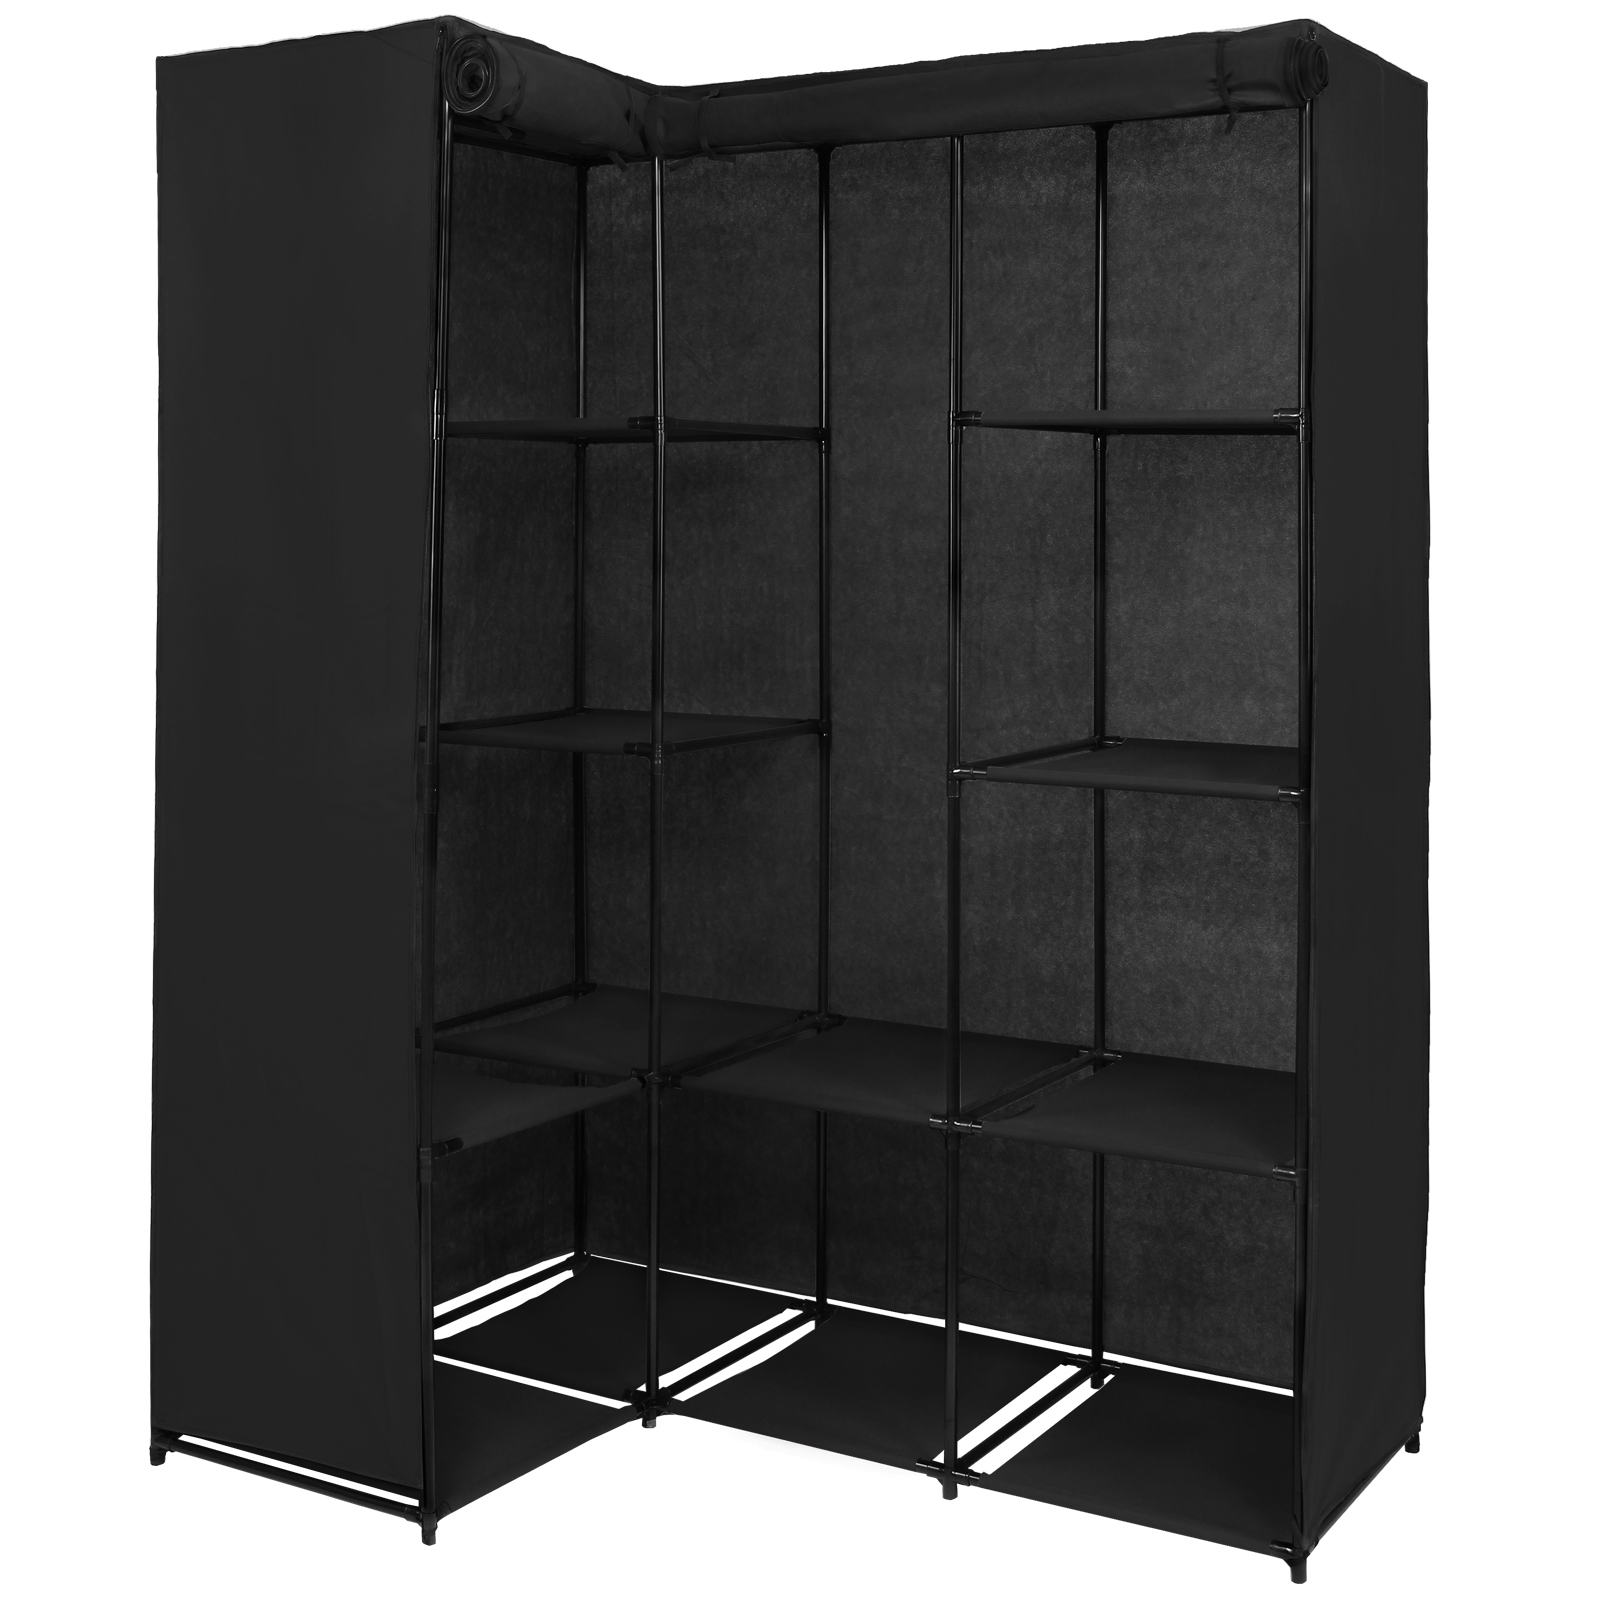 eck kleiderschrank stoffschrank faltschrank 169 x 130 x 45 cm steckregal ebay. Black Bedroom Furniture Sets. Home Design Ideas